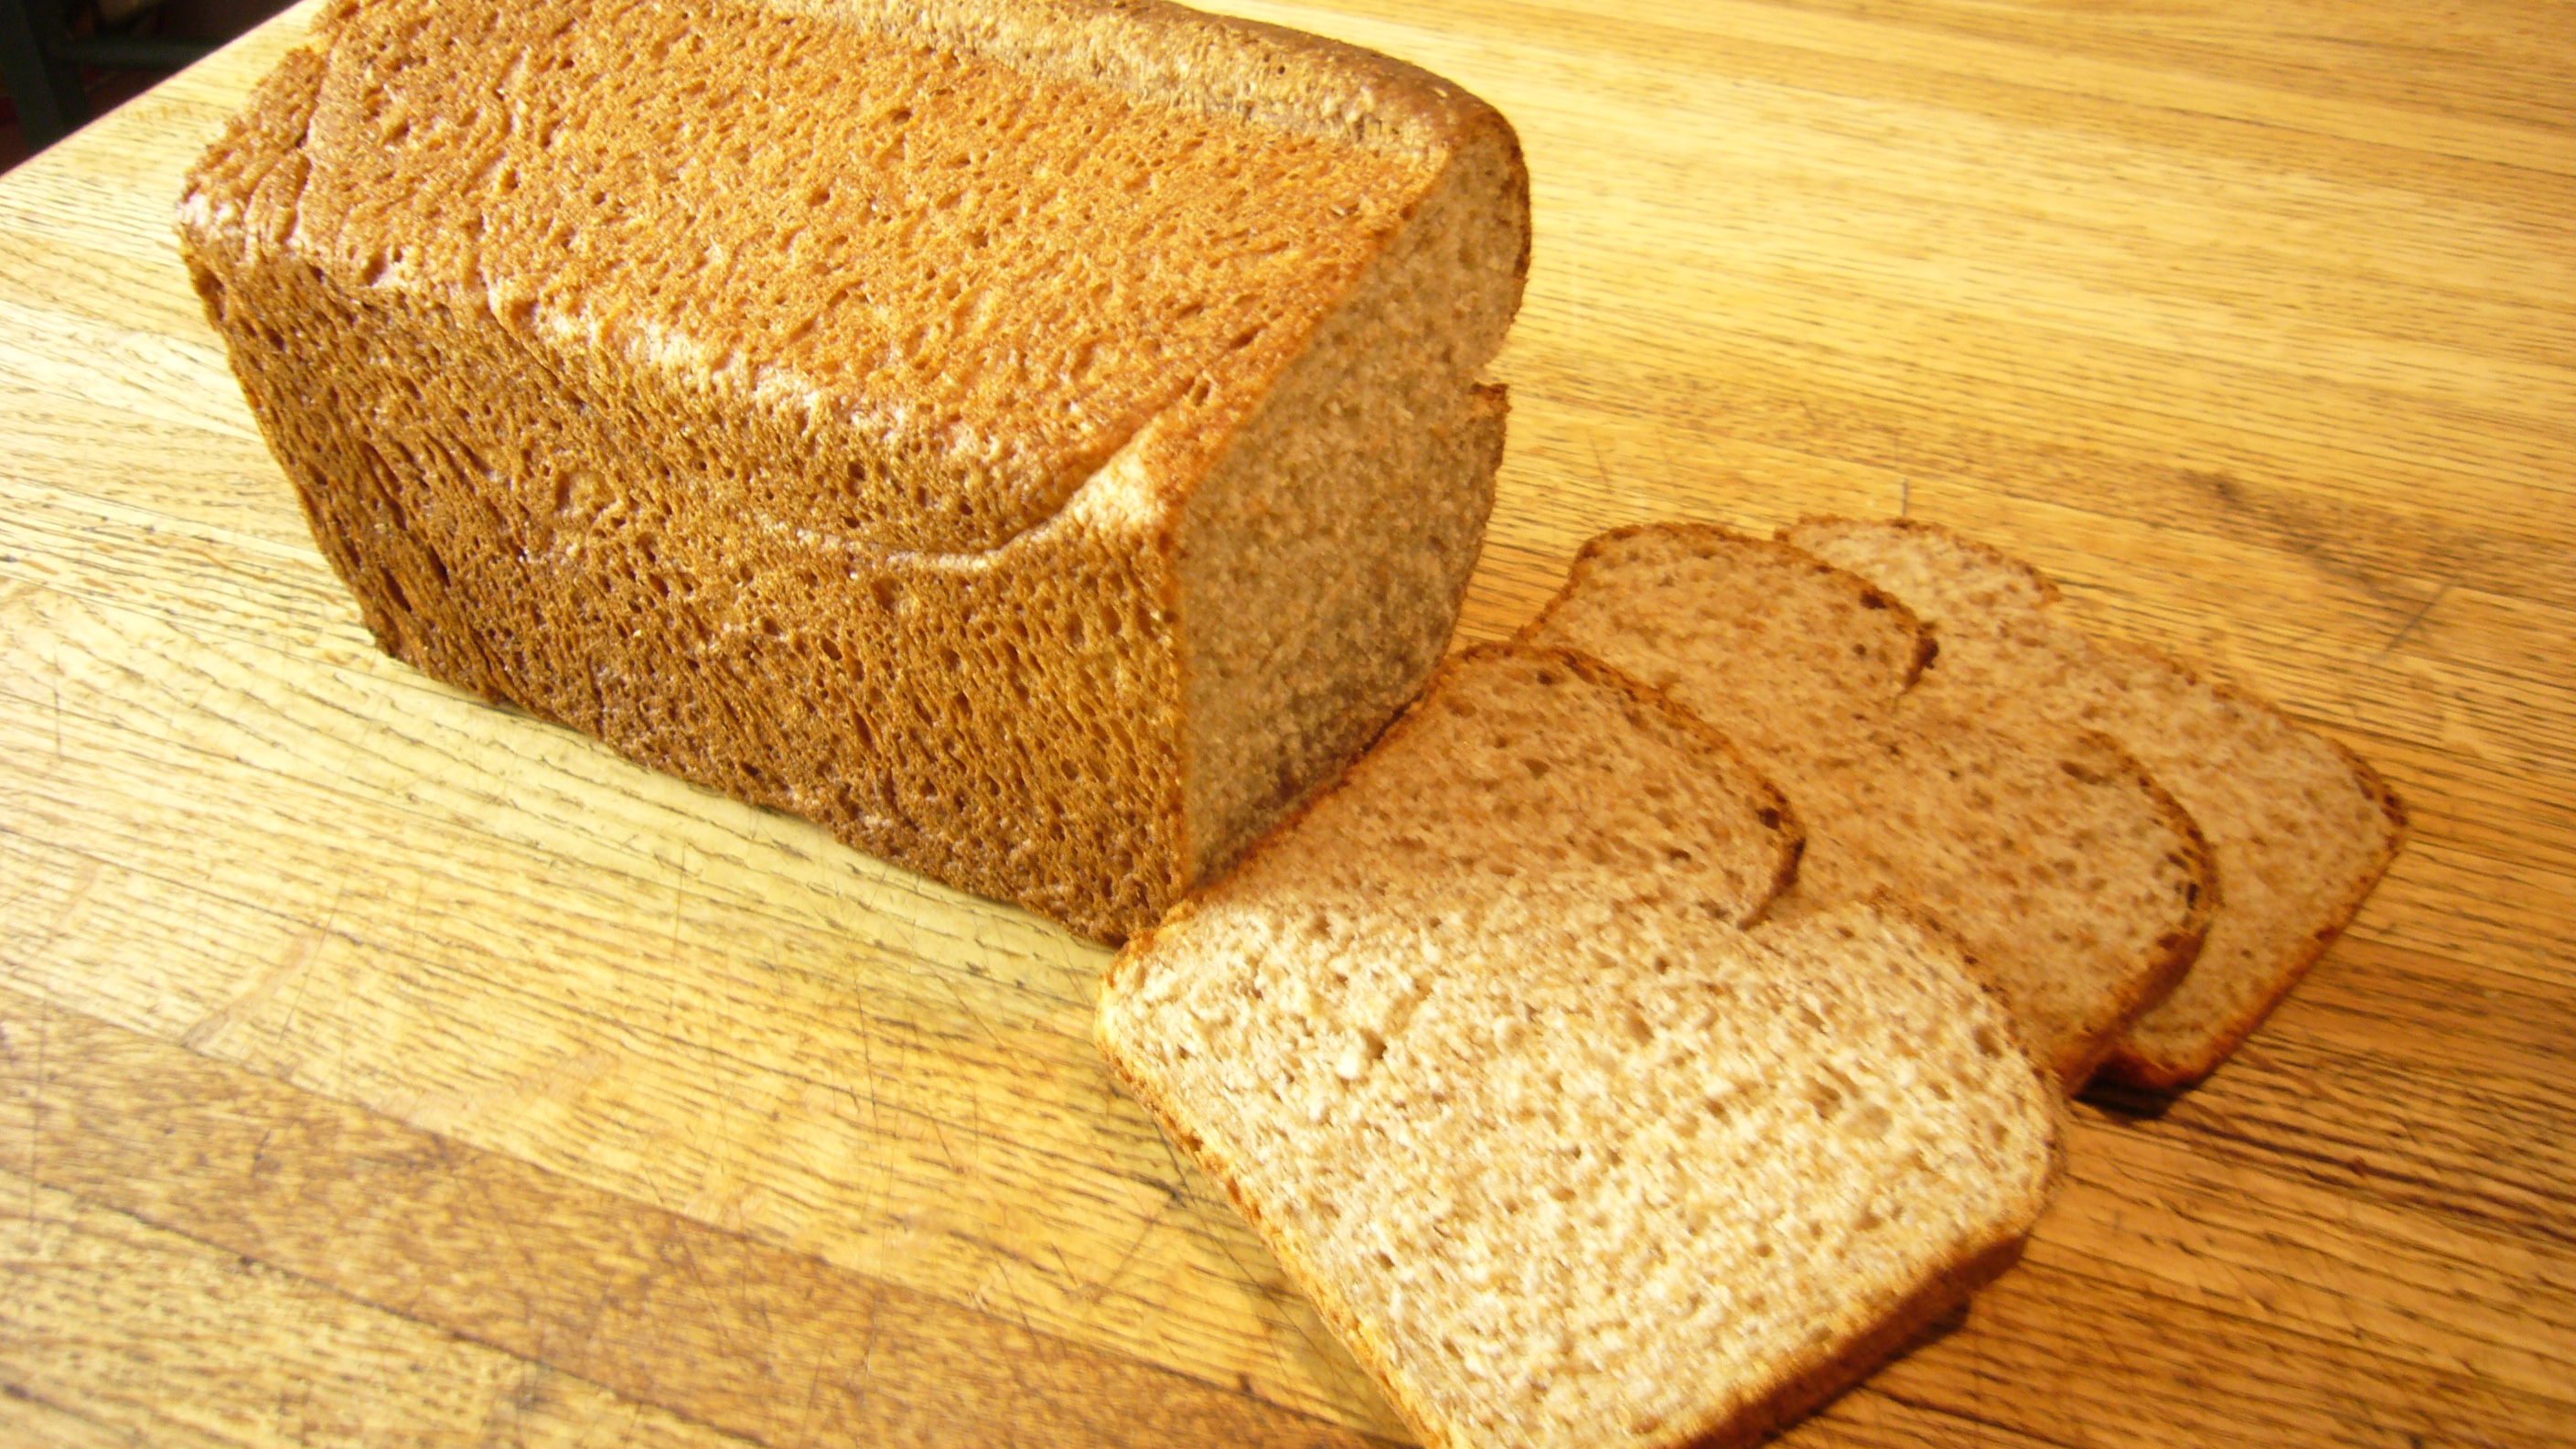 Blog #12 – Whole Wheat Sandwich Bread